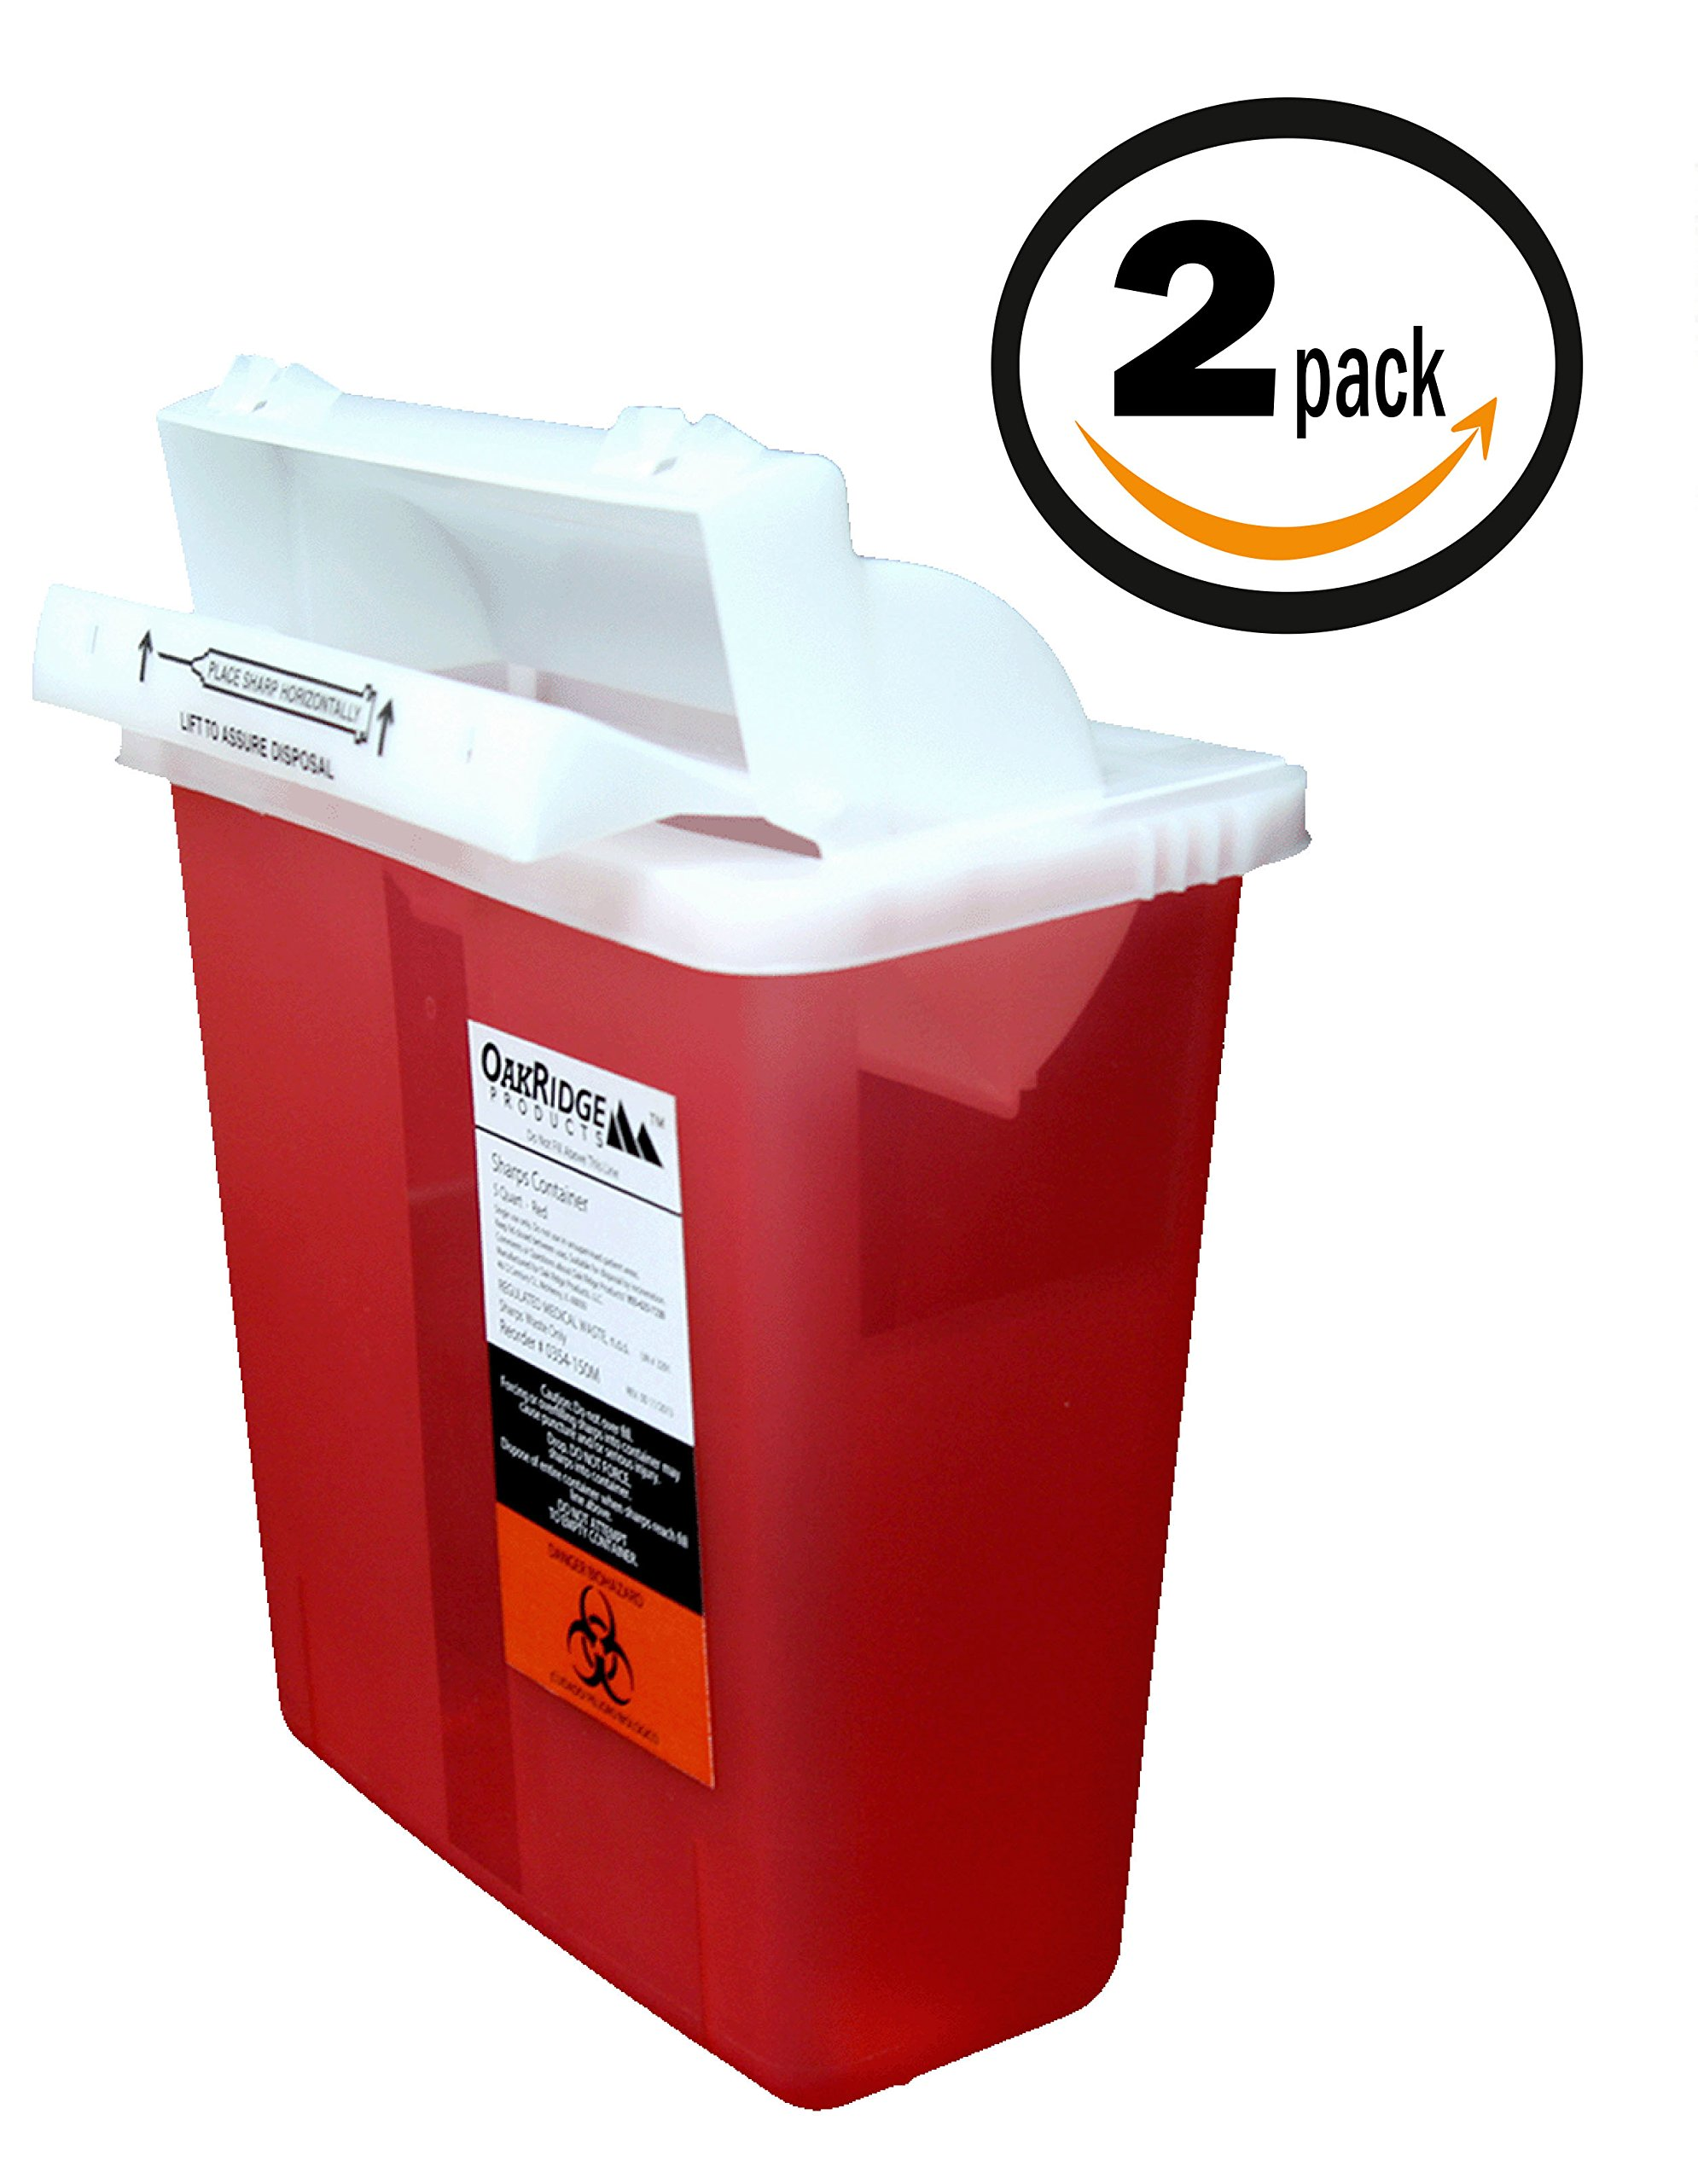 5 Quart Sharps Container (2 Pack) from OakRidge Products | Mailbox-style Lid | FDA Certified